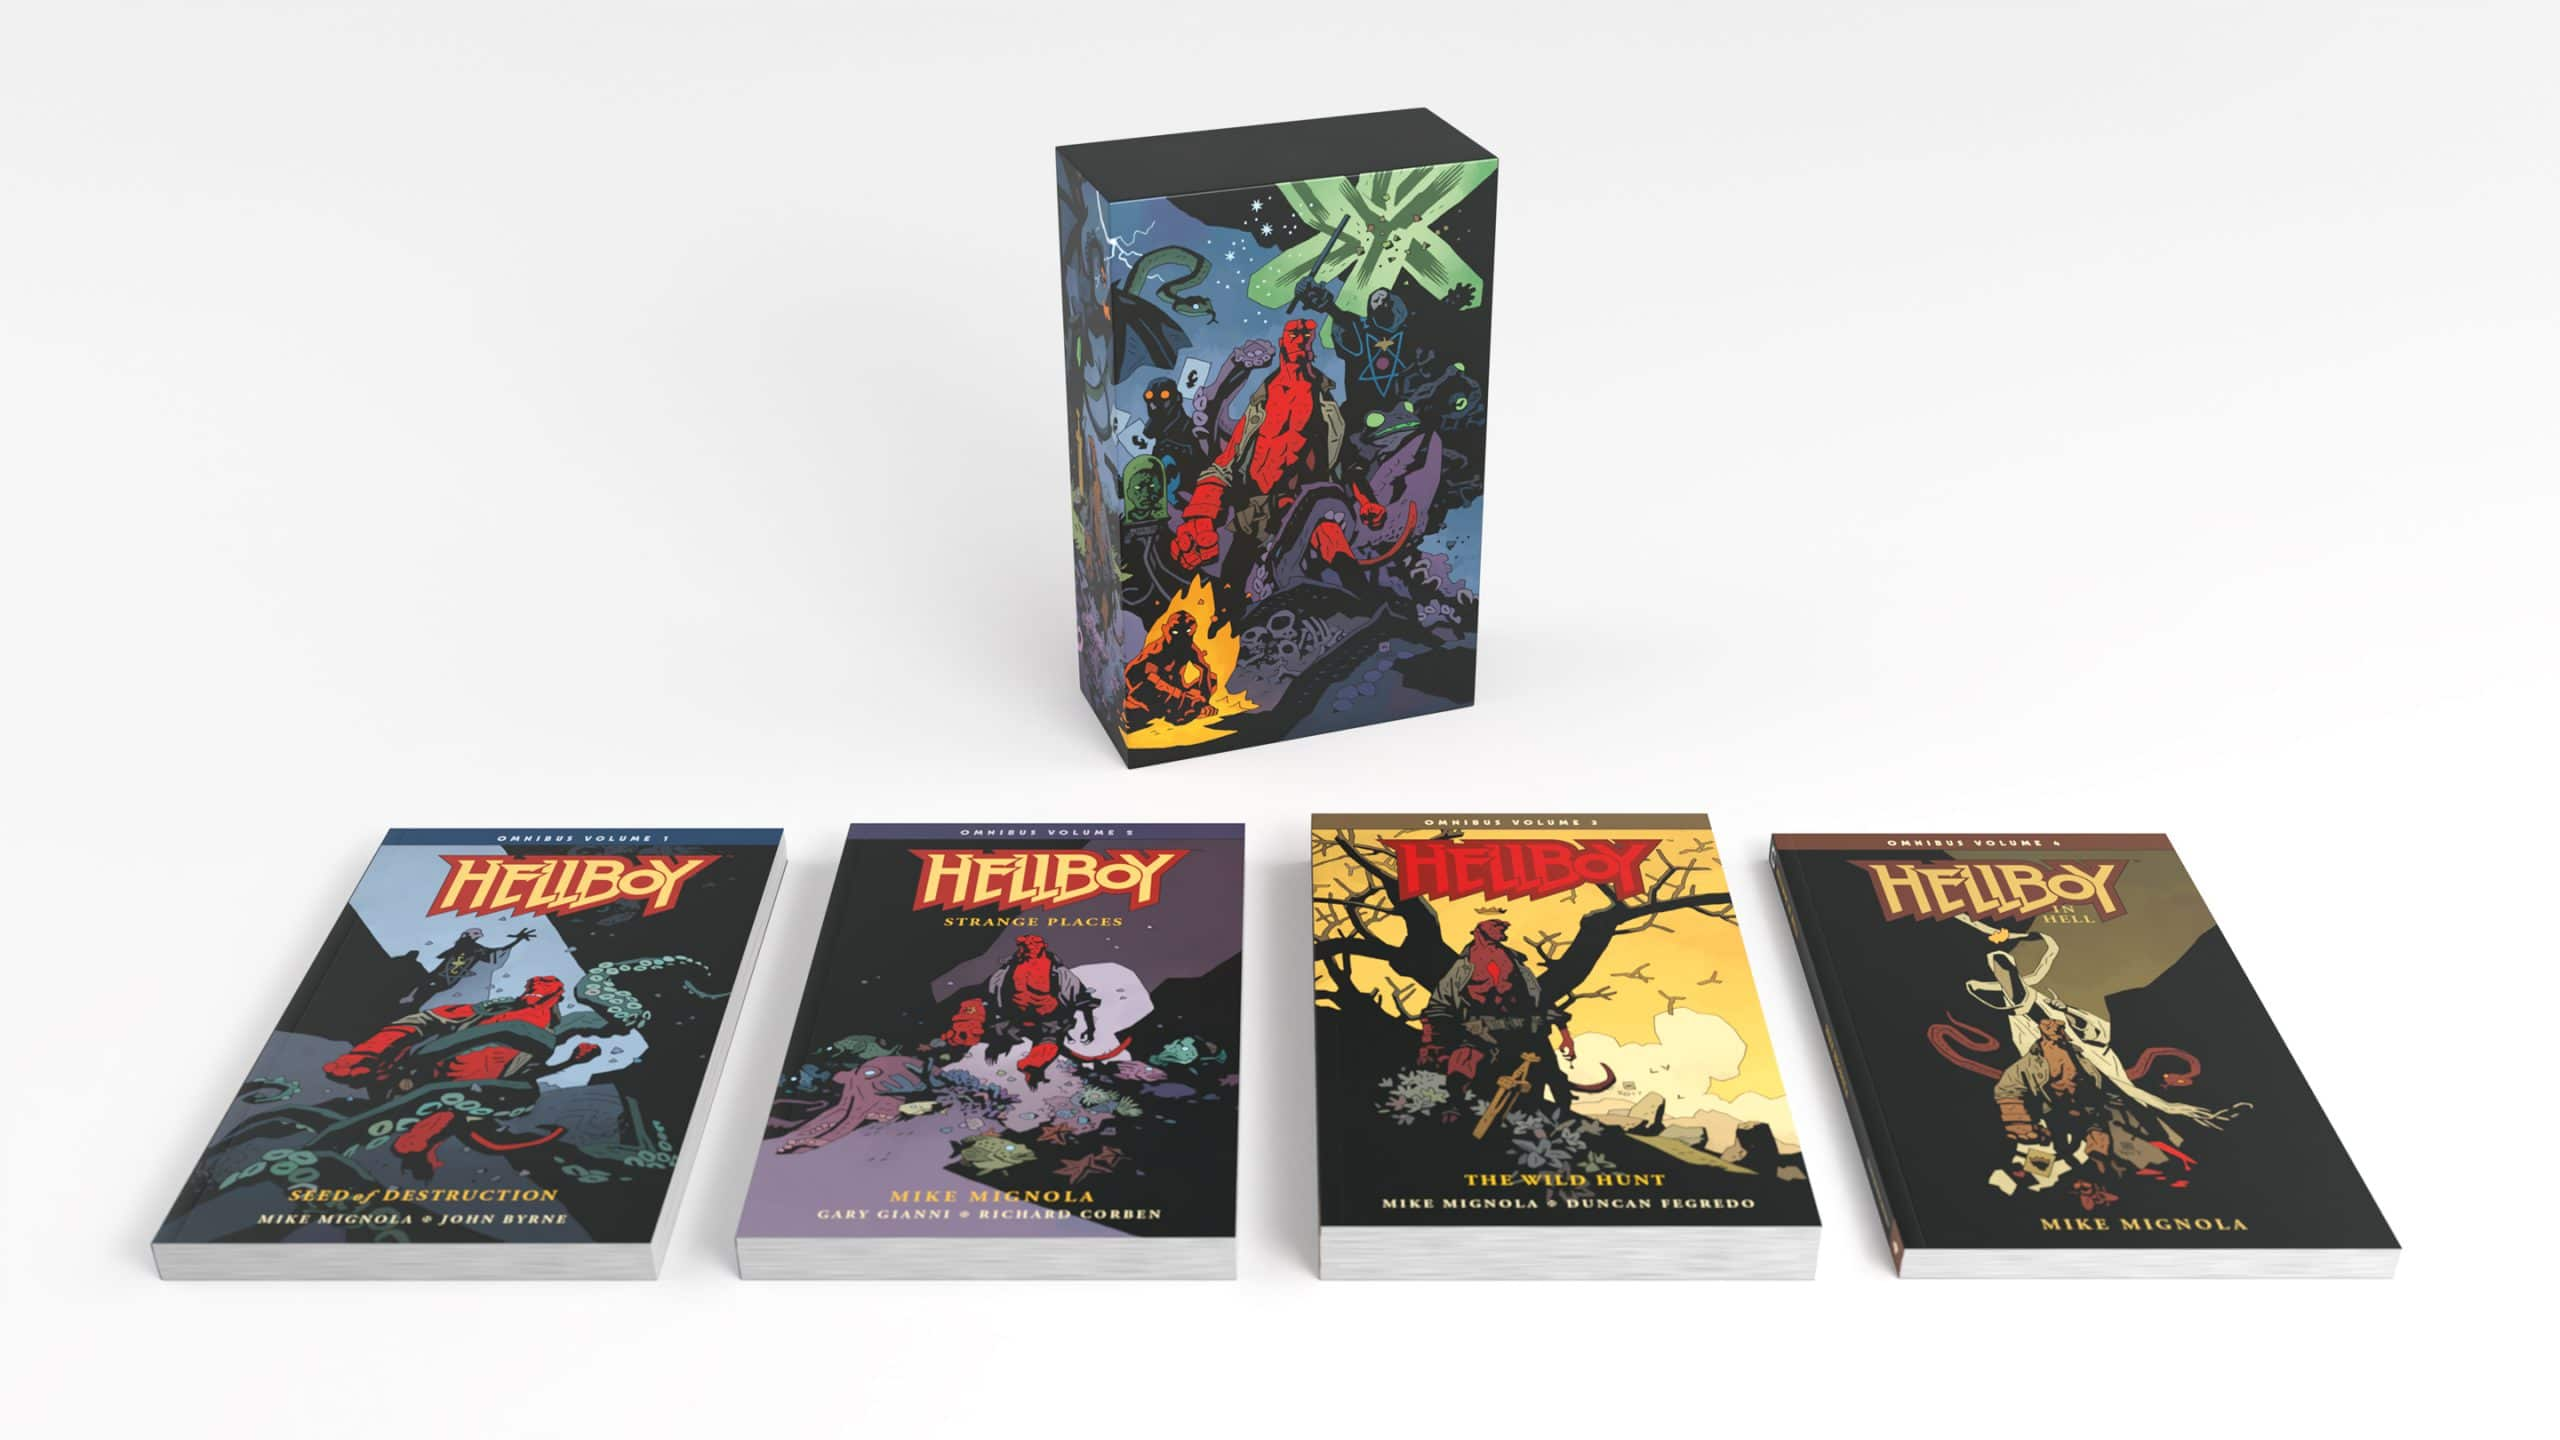 Hellboy Omnibus And Fine Art Reprints Coming From Dark Horse